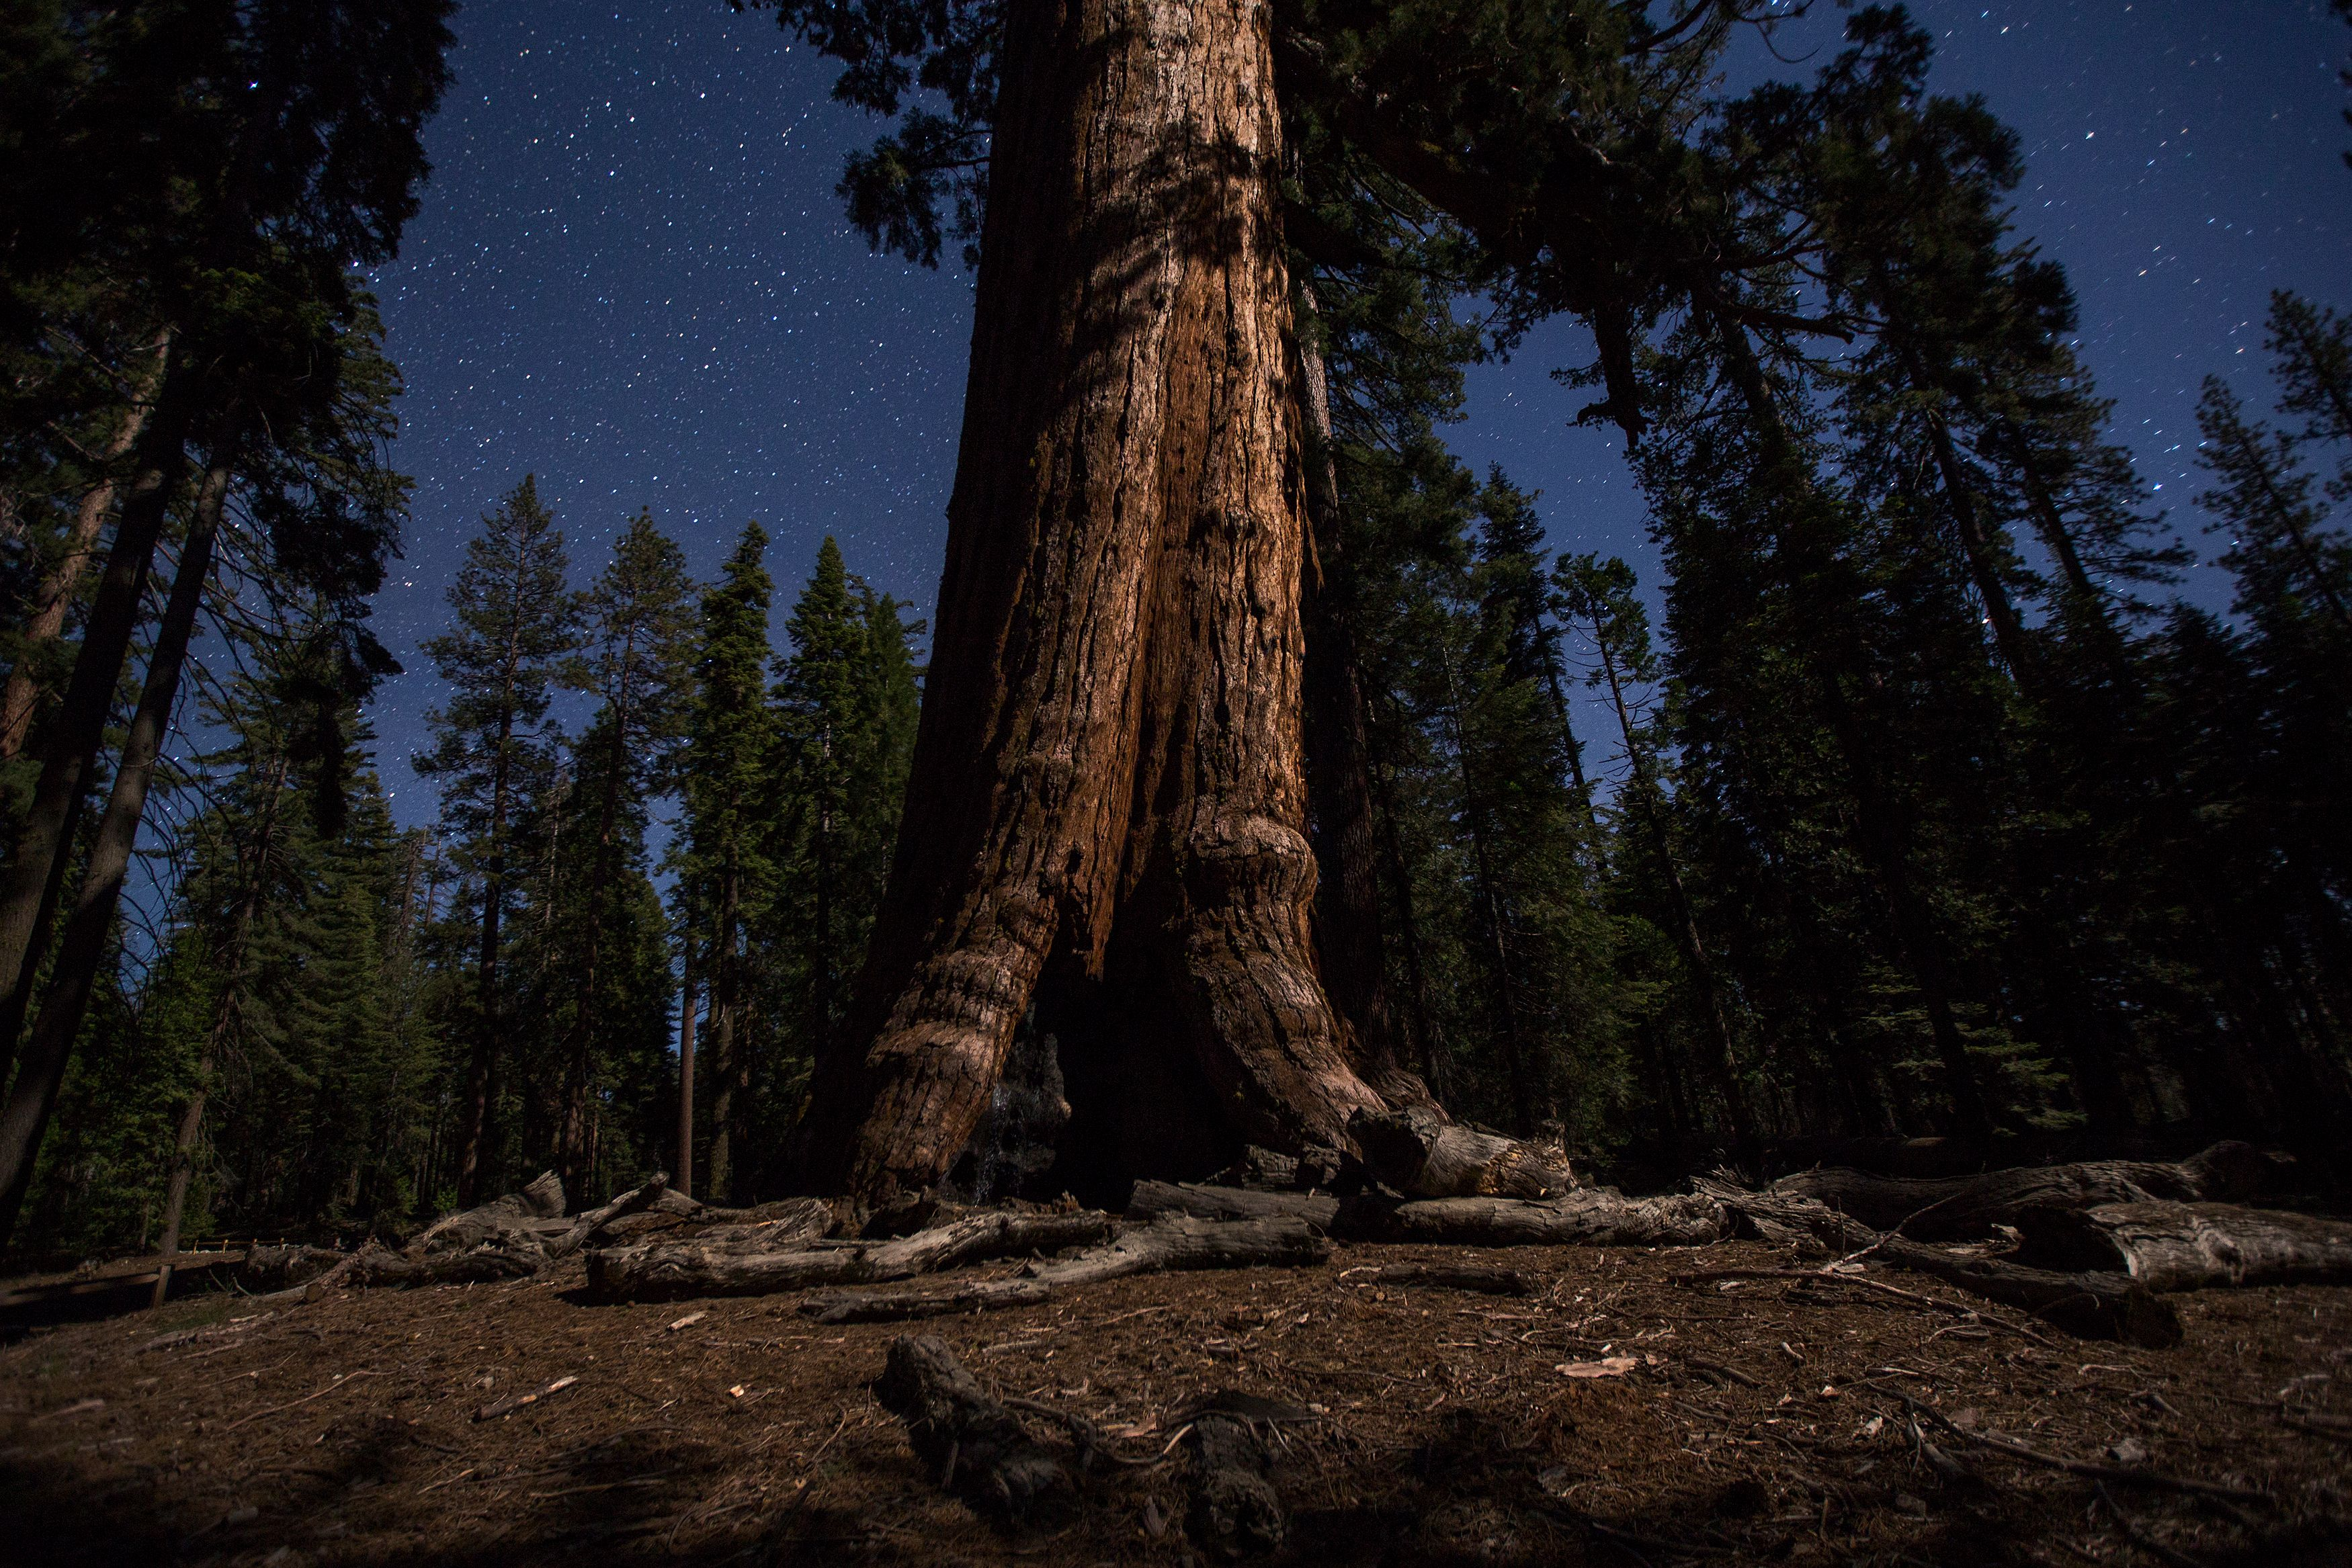 Slide 10 of 77: The Grizzly Giant sequoia tree, which is 96 feet in circumference and thousands of years old, is illumined by moonlight under a starry sky at the Mariposa Grove of giant sequoias on June 20, 2018 in Yosemite National Park, California which recently reopened after a three-year renovation project to better protect the trees that can live more than 3,000 years. (Photo by DAVID MCNEW / AFP)        (Photo credit should read DAVID MCNEW/AFP/Getty Images)